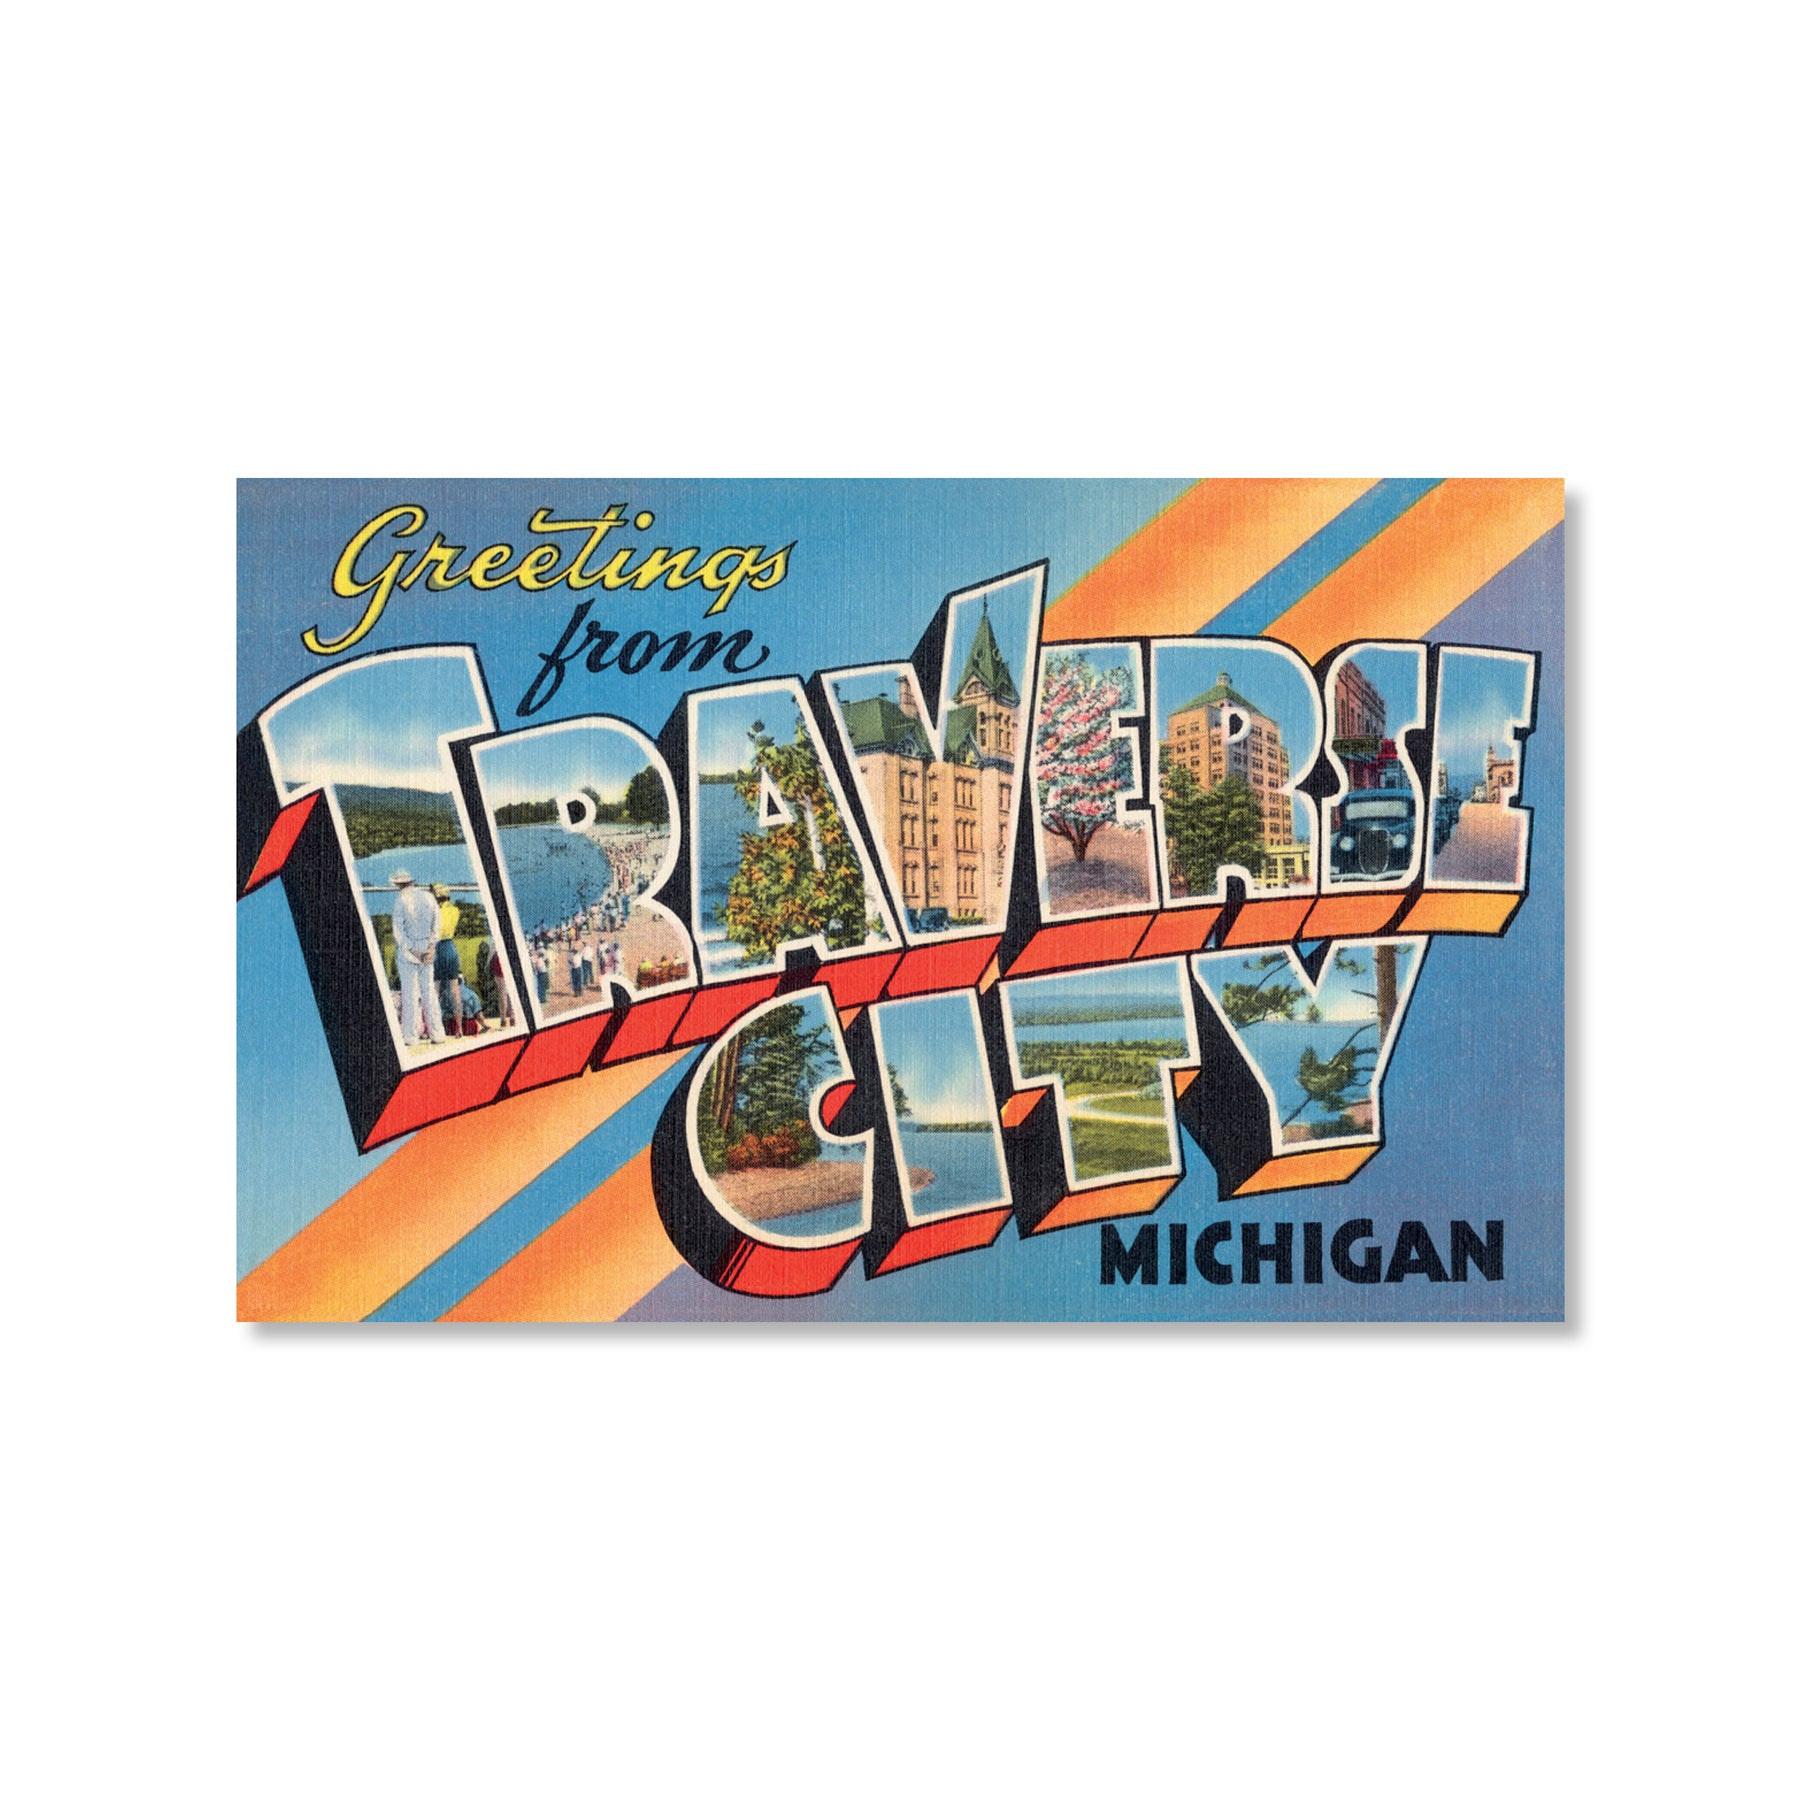 Greetings from Traverse City Postcard